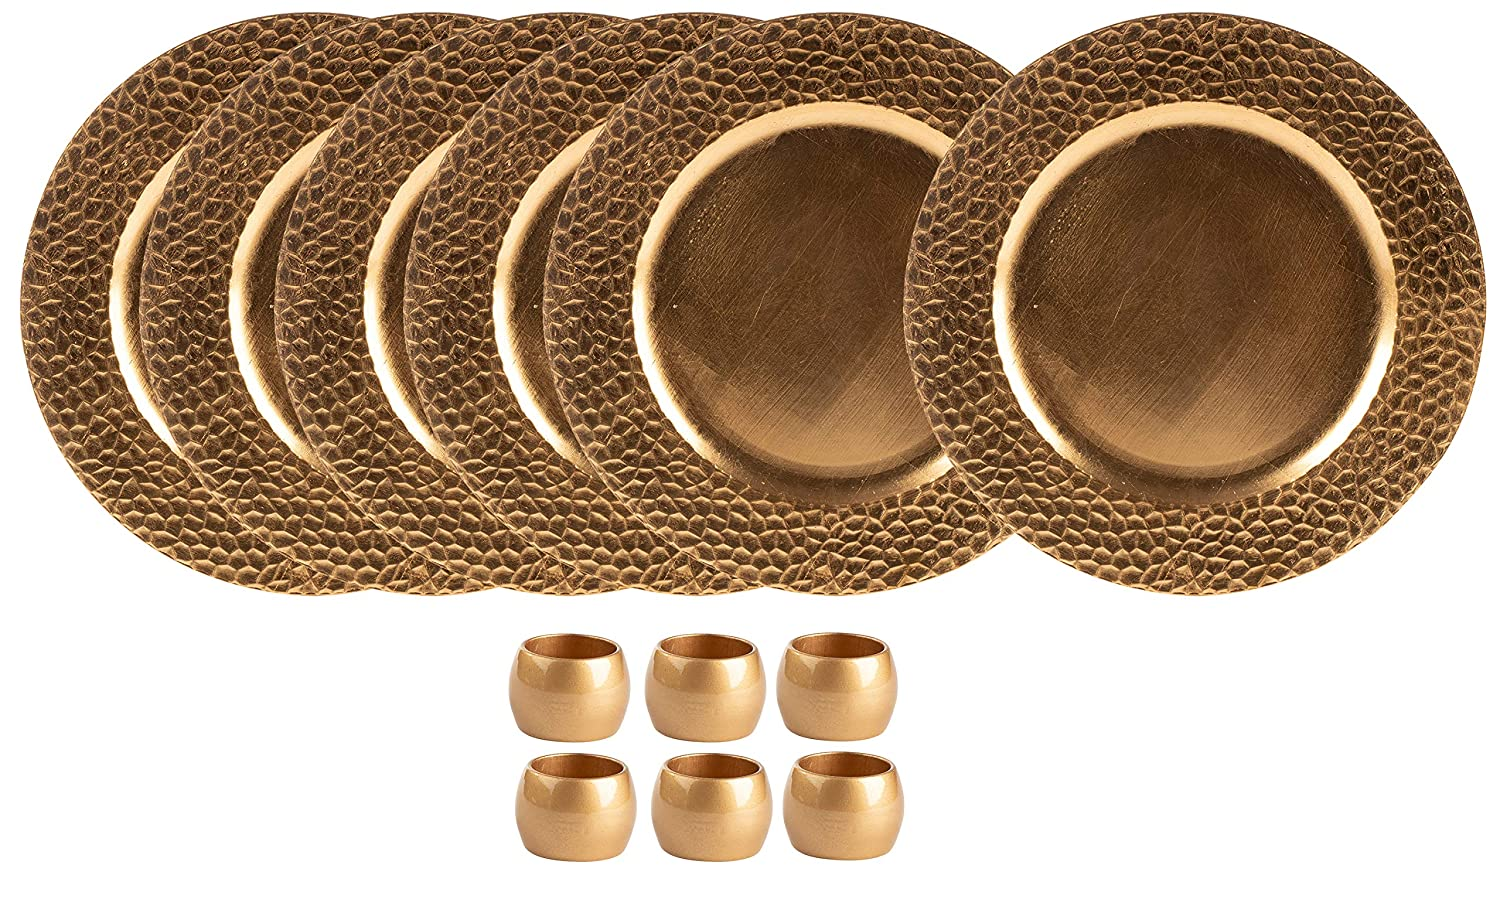 Round Charger Plates and Napkin Rings Set- 12-Piece 13-Inch Gold Charger Plates with Hammered Texture and Electroplated Finish, For Special Events, Weddings, Banquets Juvale